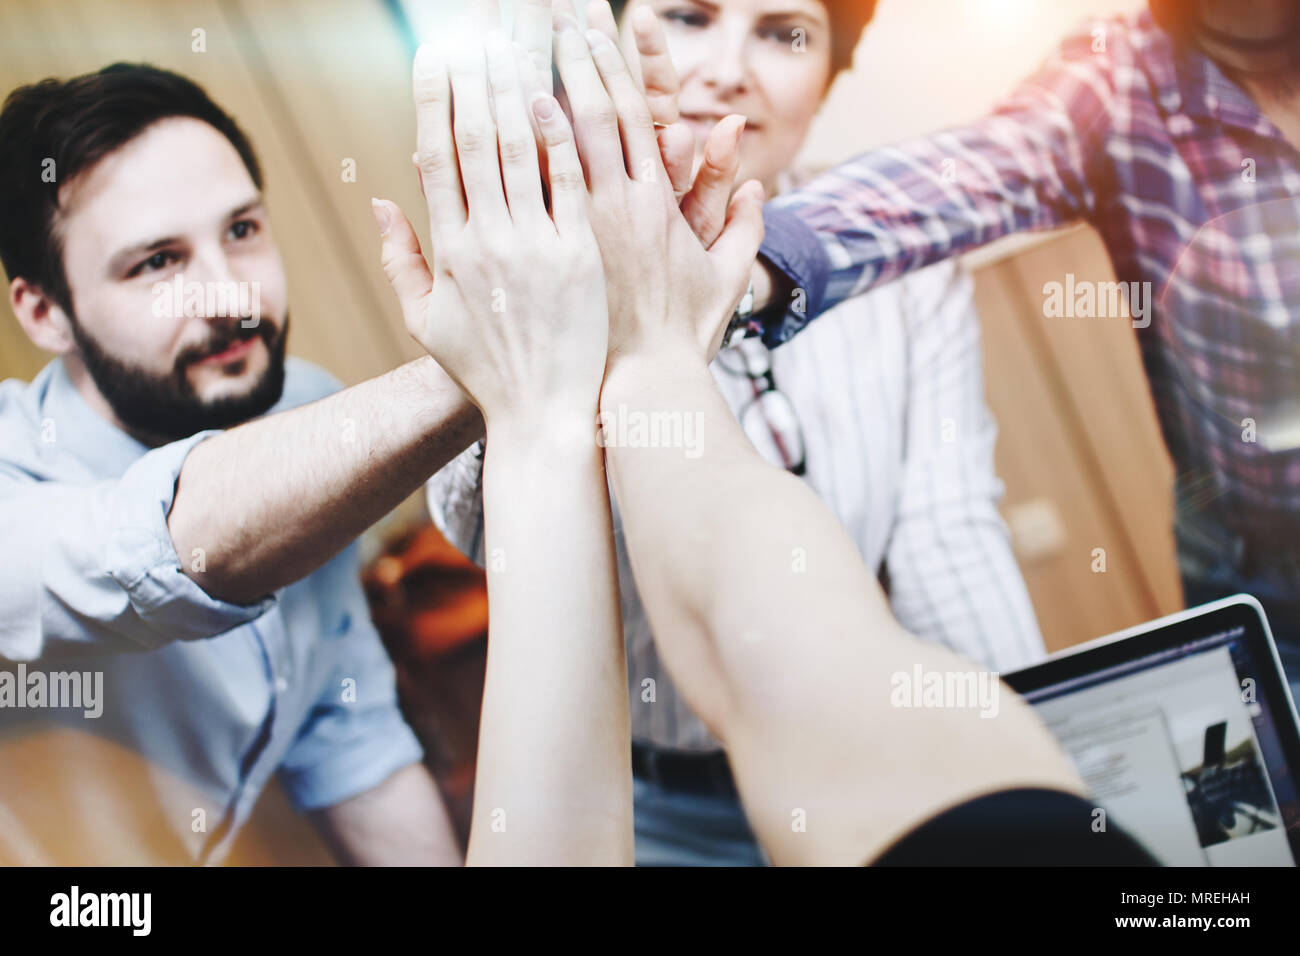 Close-knit team of young people achieved success in their work. Modern businessmen have developed a successful plan - Stock Image